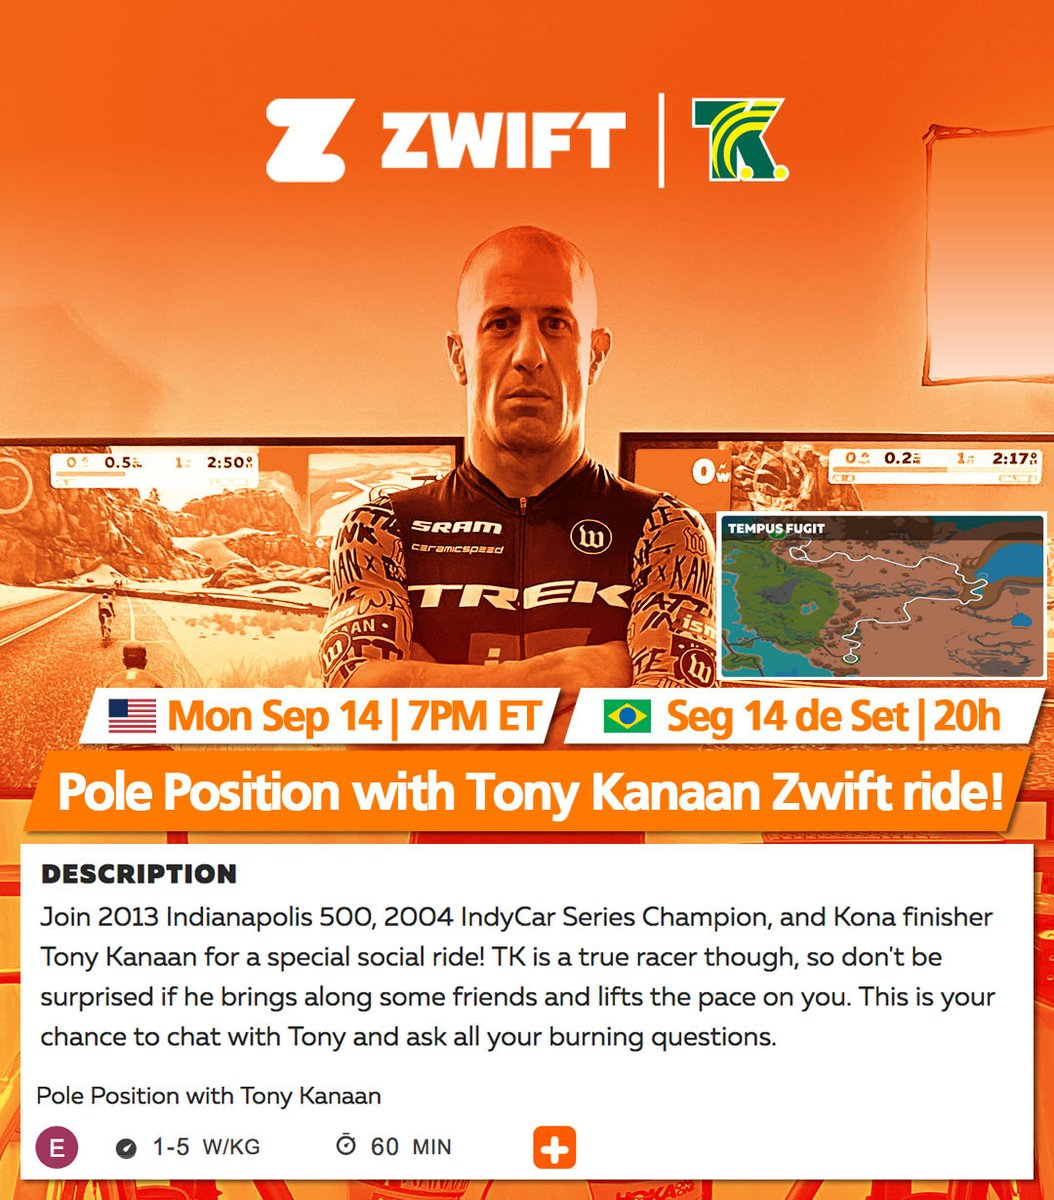 🇺🇸 Monday is @GoZwift @GoZwiftTri ride night! Join us at 7p ET for a fun one hour ride. Look the ride up on the Companion app or 👉🏻 https://t.co/FzyqX6nom8 #GoZwift. Let's ride! https://t.co/Gk99vx5fwe